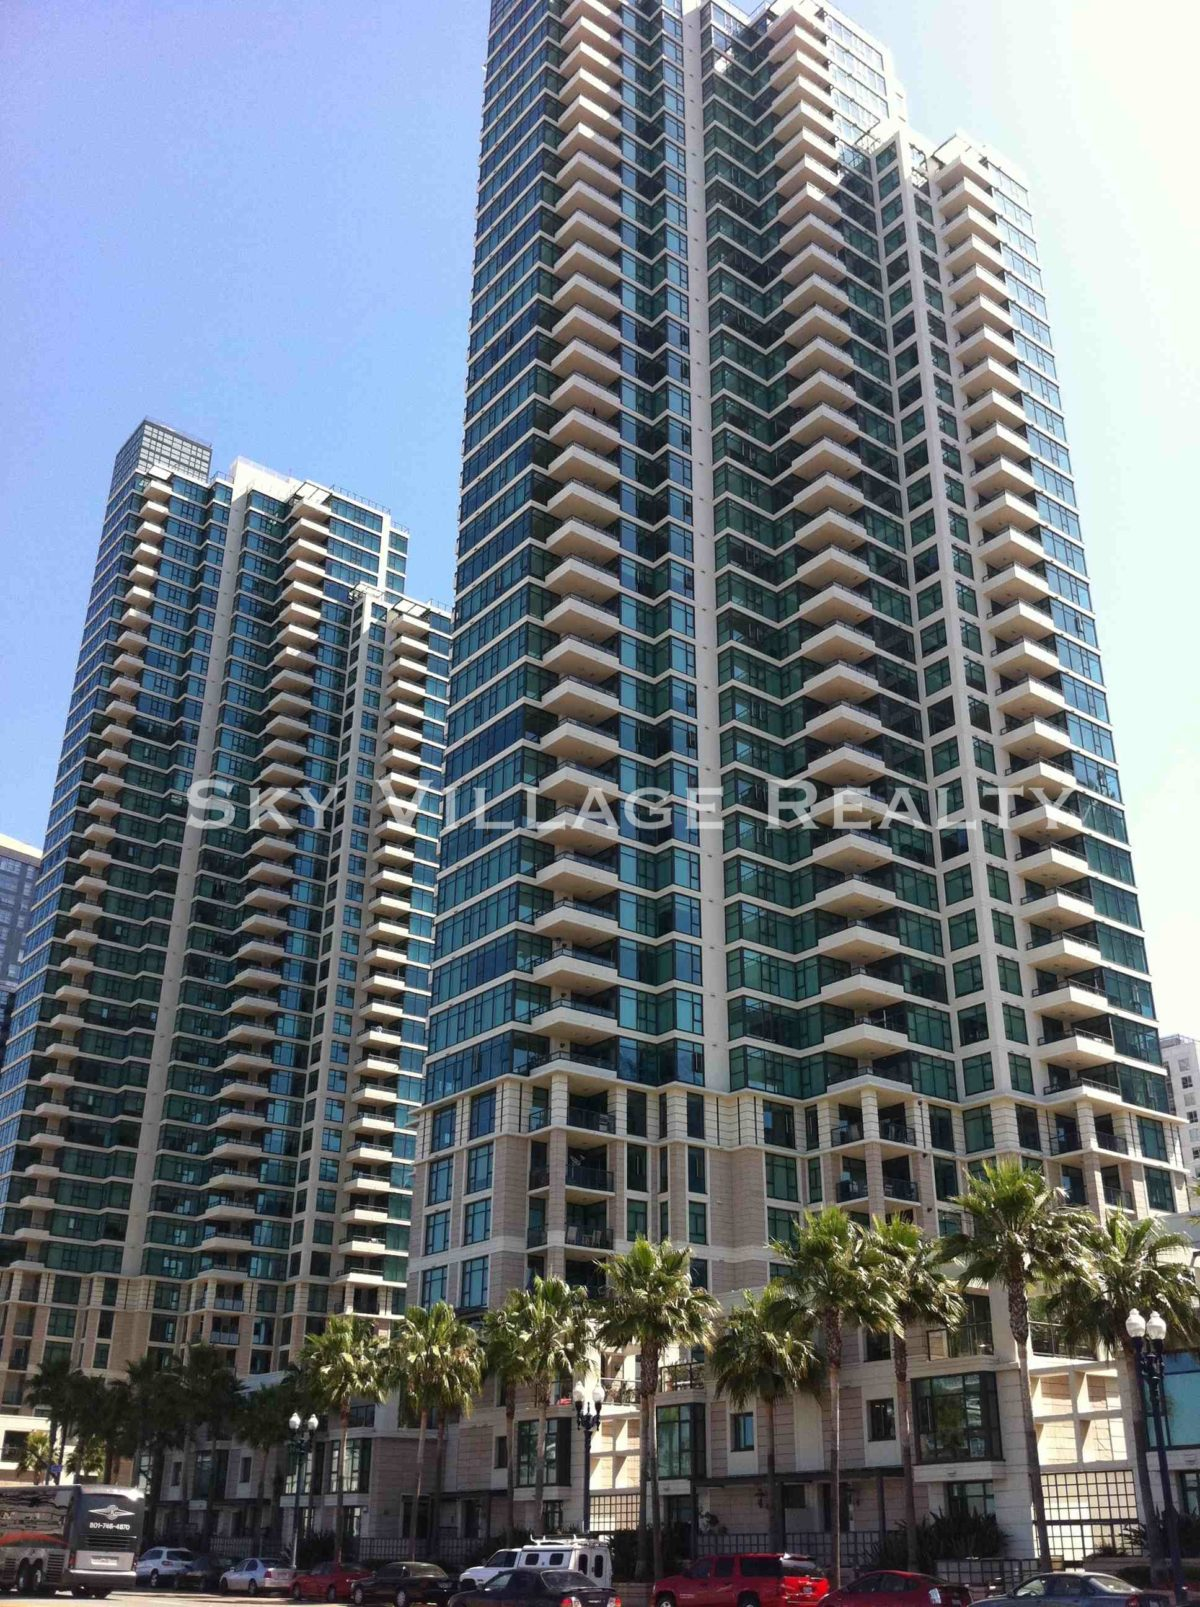 Best luxury high rise condo buildings in downtown san diego - Best apartments in san diego ...